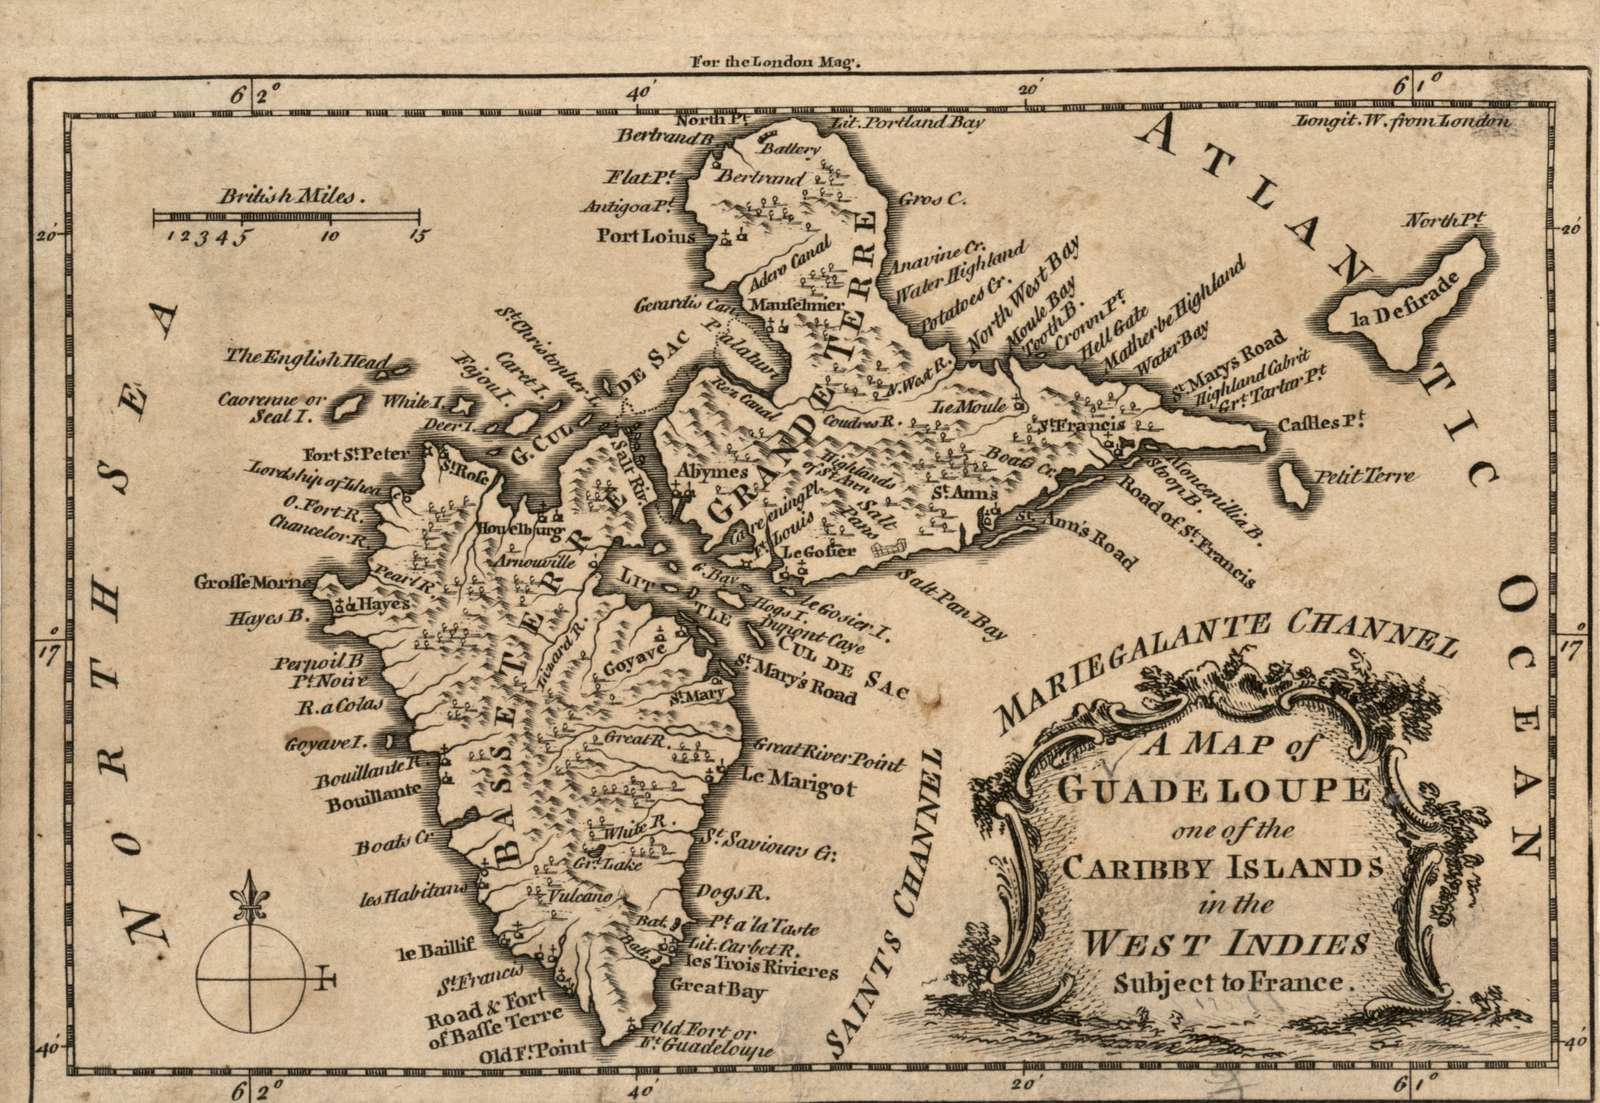 A map of Guadeloupe, one of the Caribby Islands in the West Indies subject to France.